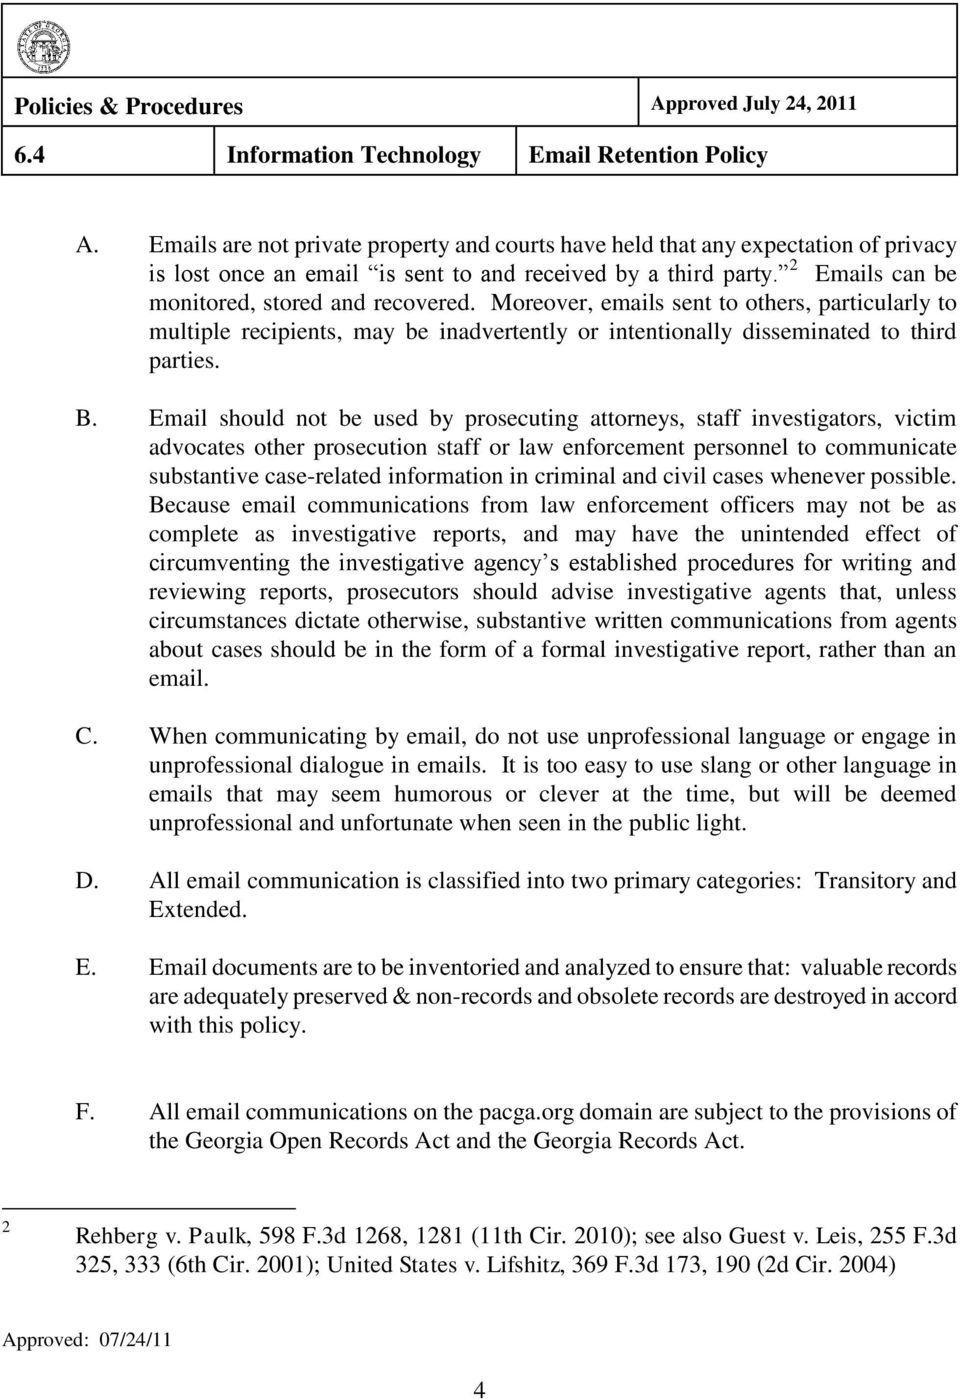 Email should not be used by prosecuting attorneys, staff investigators, victim advocates other prosecution staff or law enforcement personnel to communicate substantive case-related information in